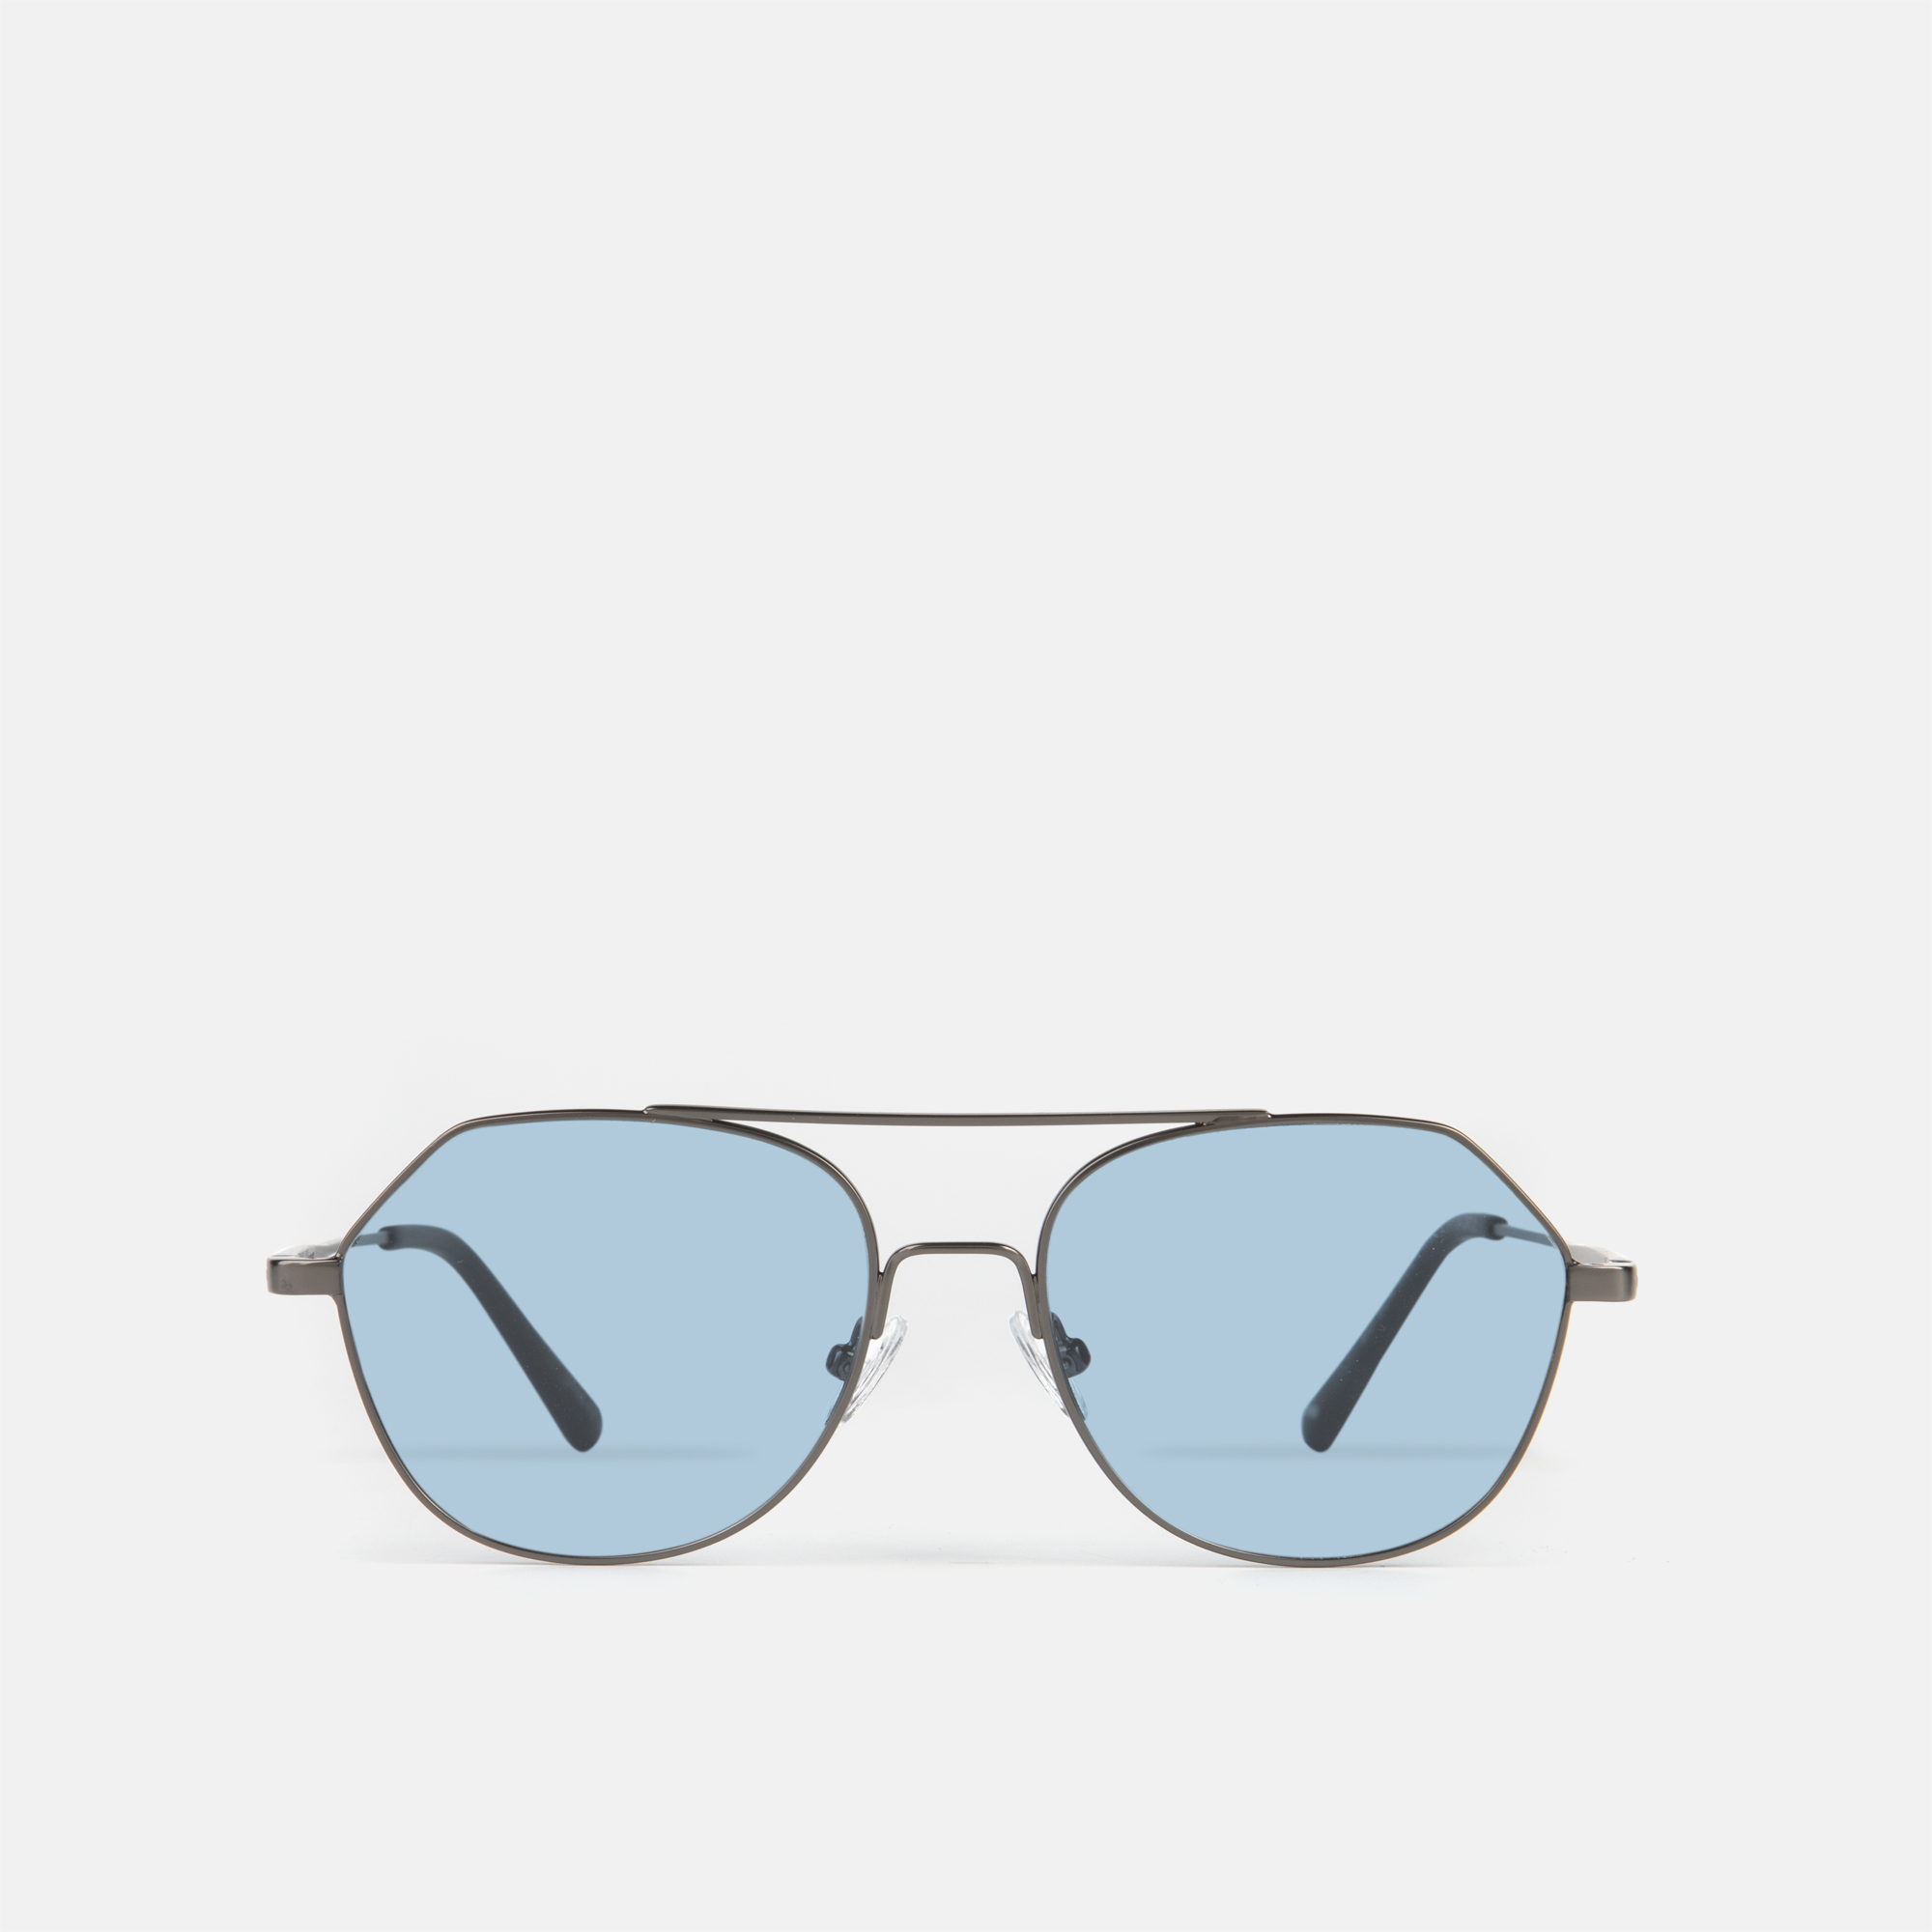 mó sun geek 65M A, grey/blue, hi-res